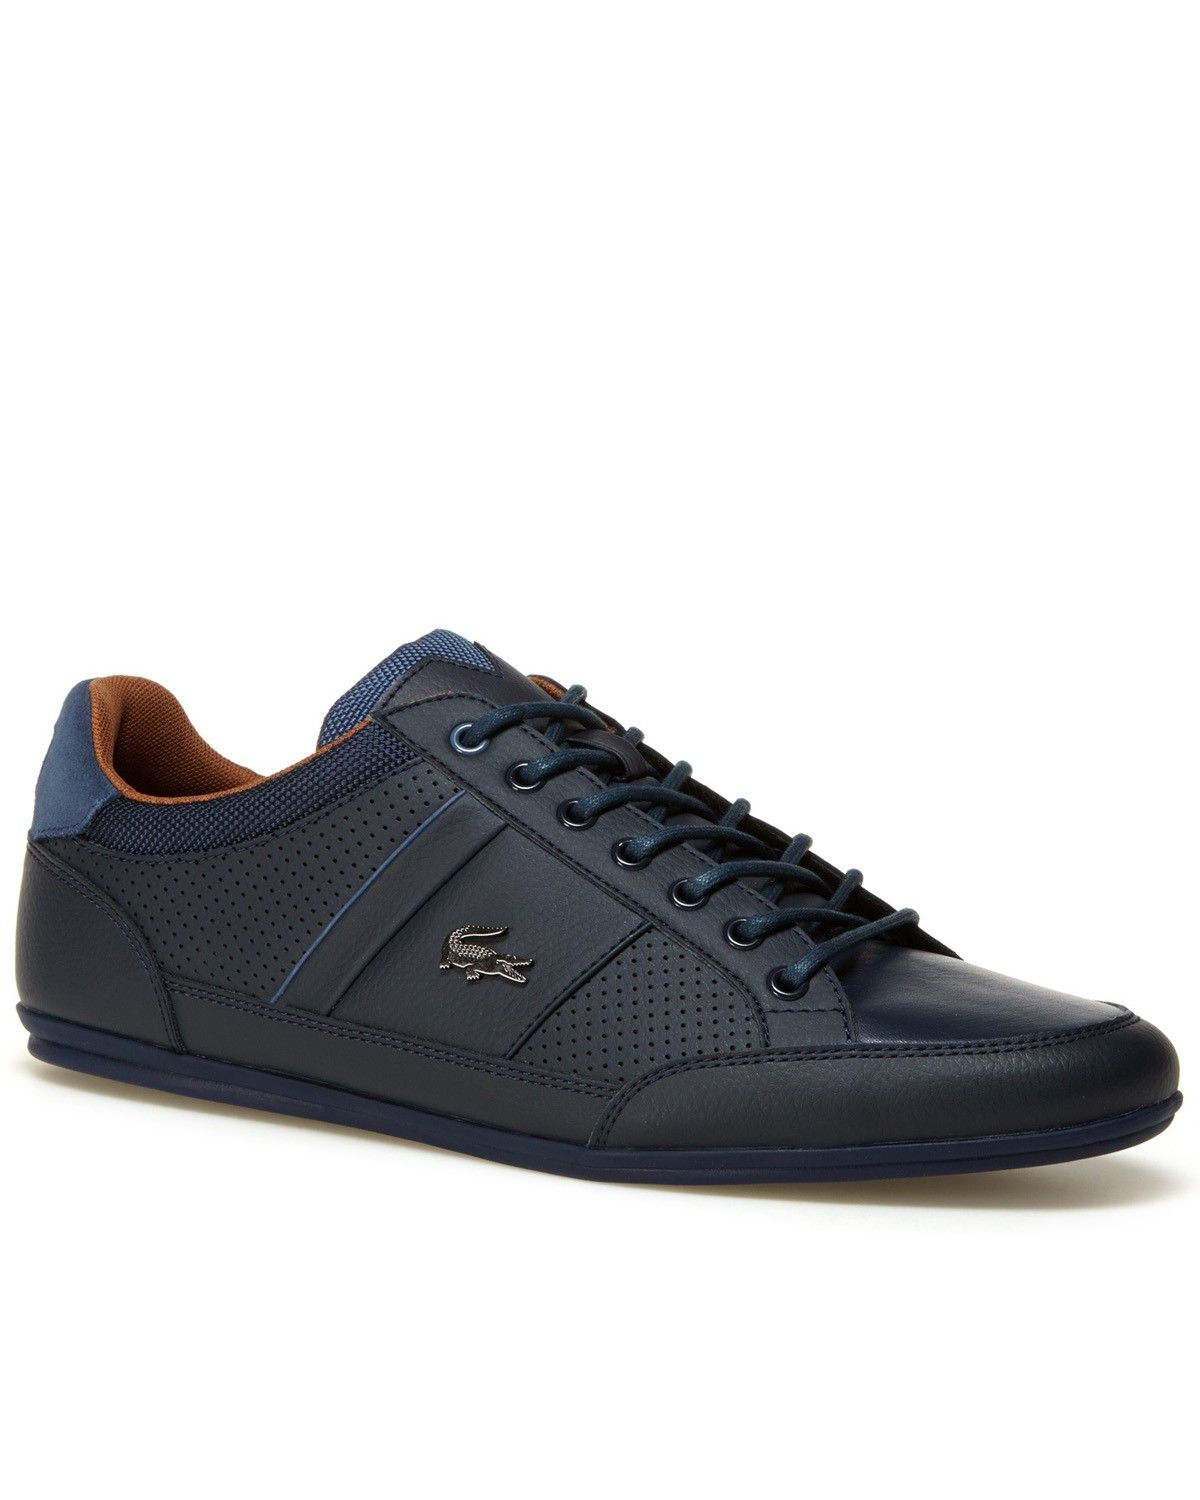 2368572e2ed77 LACOSTE © Navy Blue Shoes ✶ Chaymon